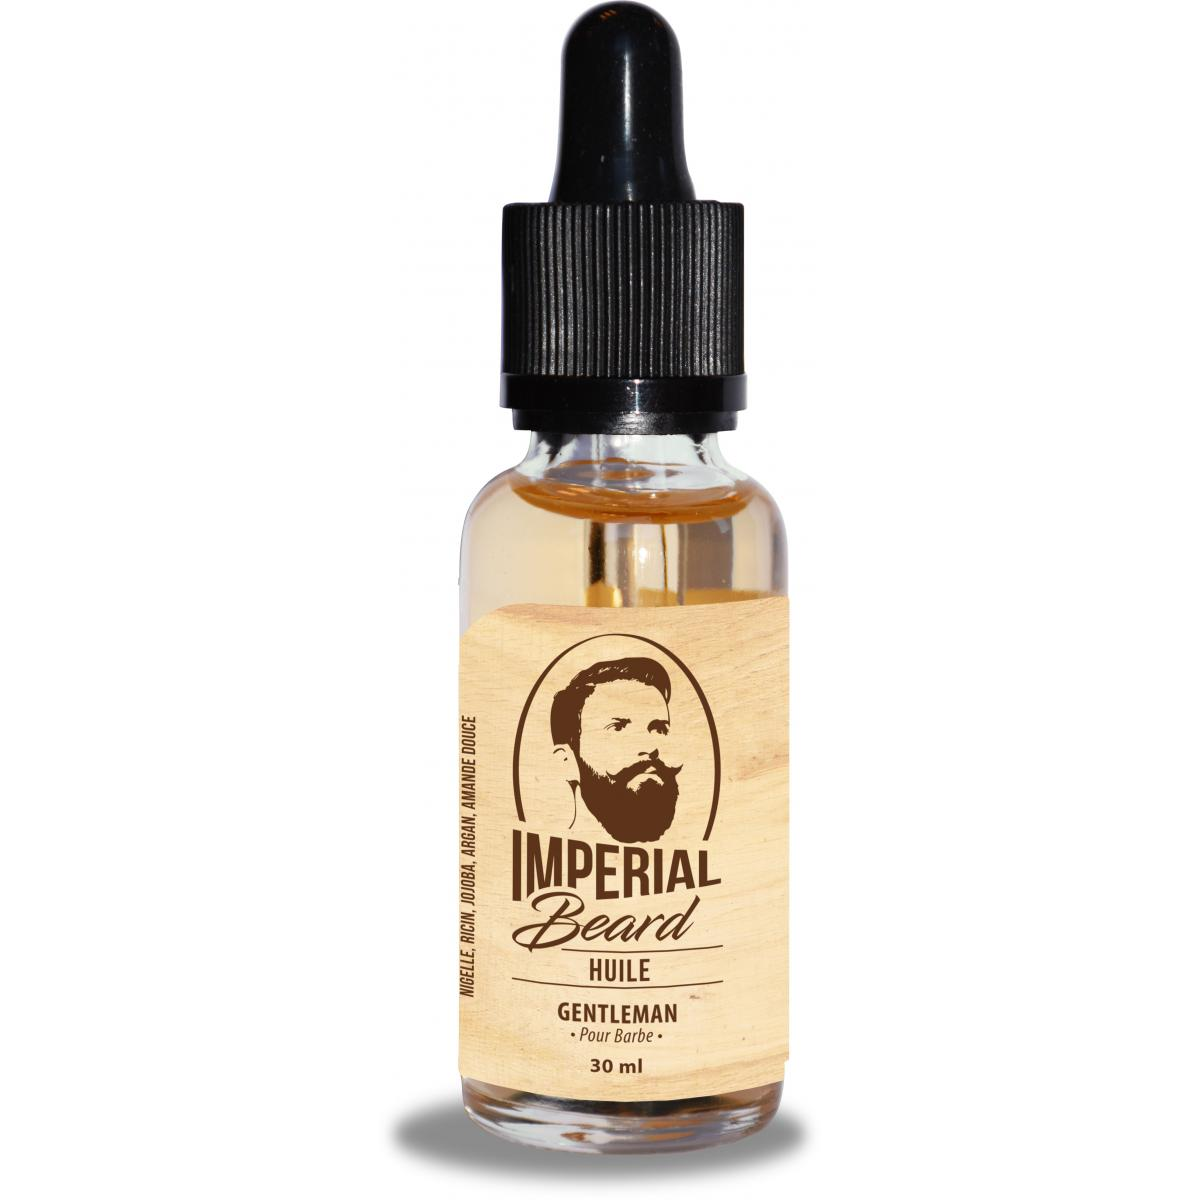 Huile pour Barbe Imperial Beard